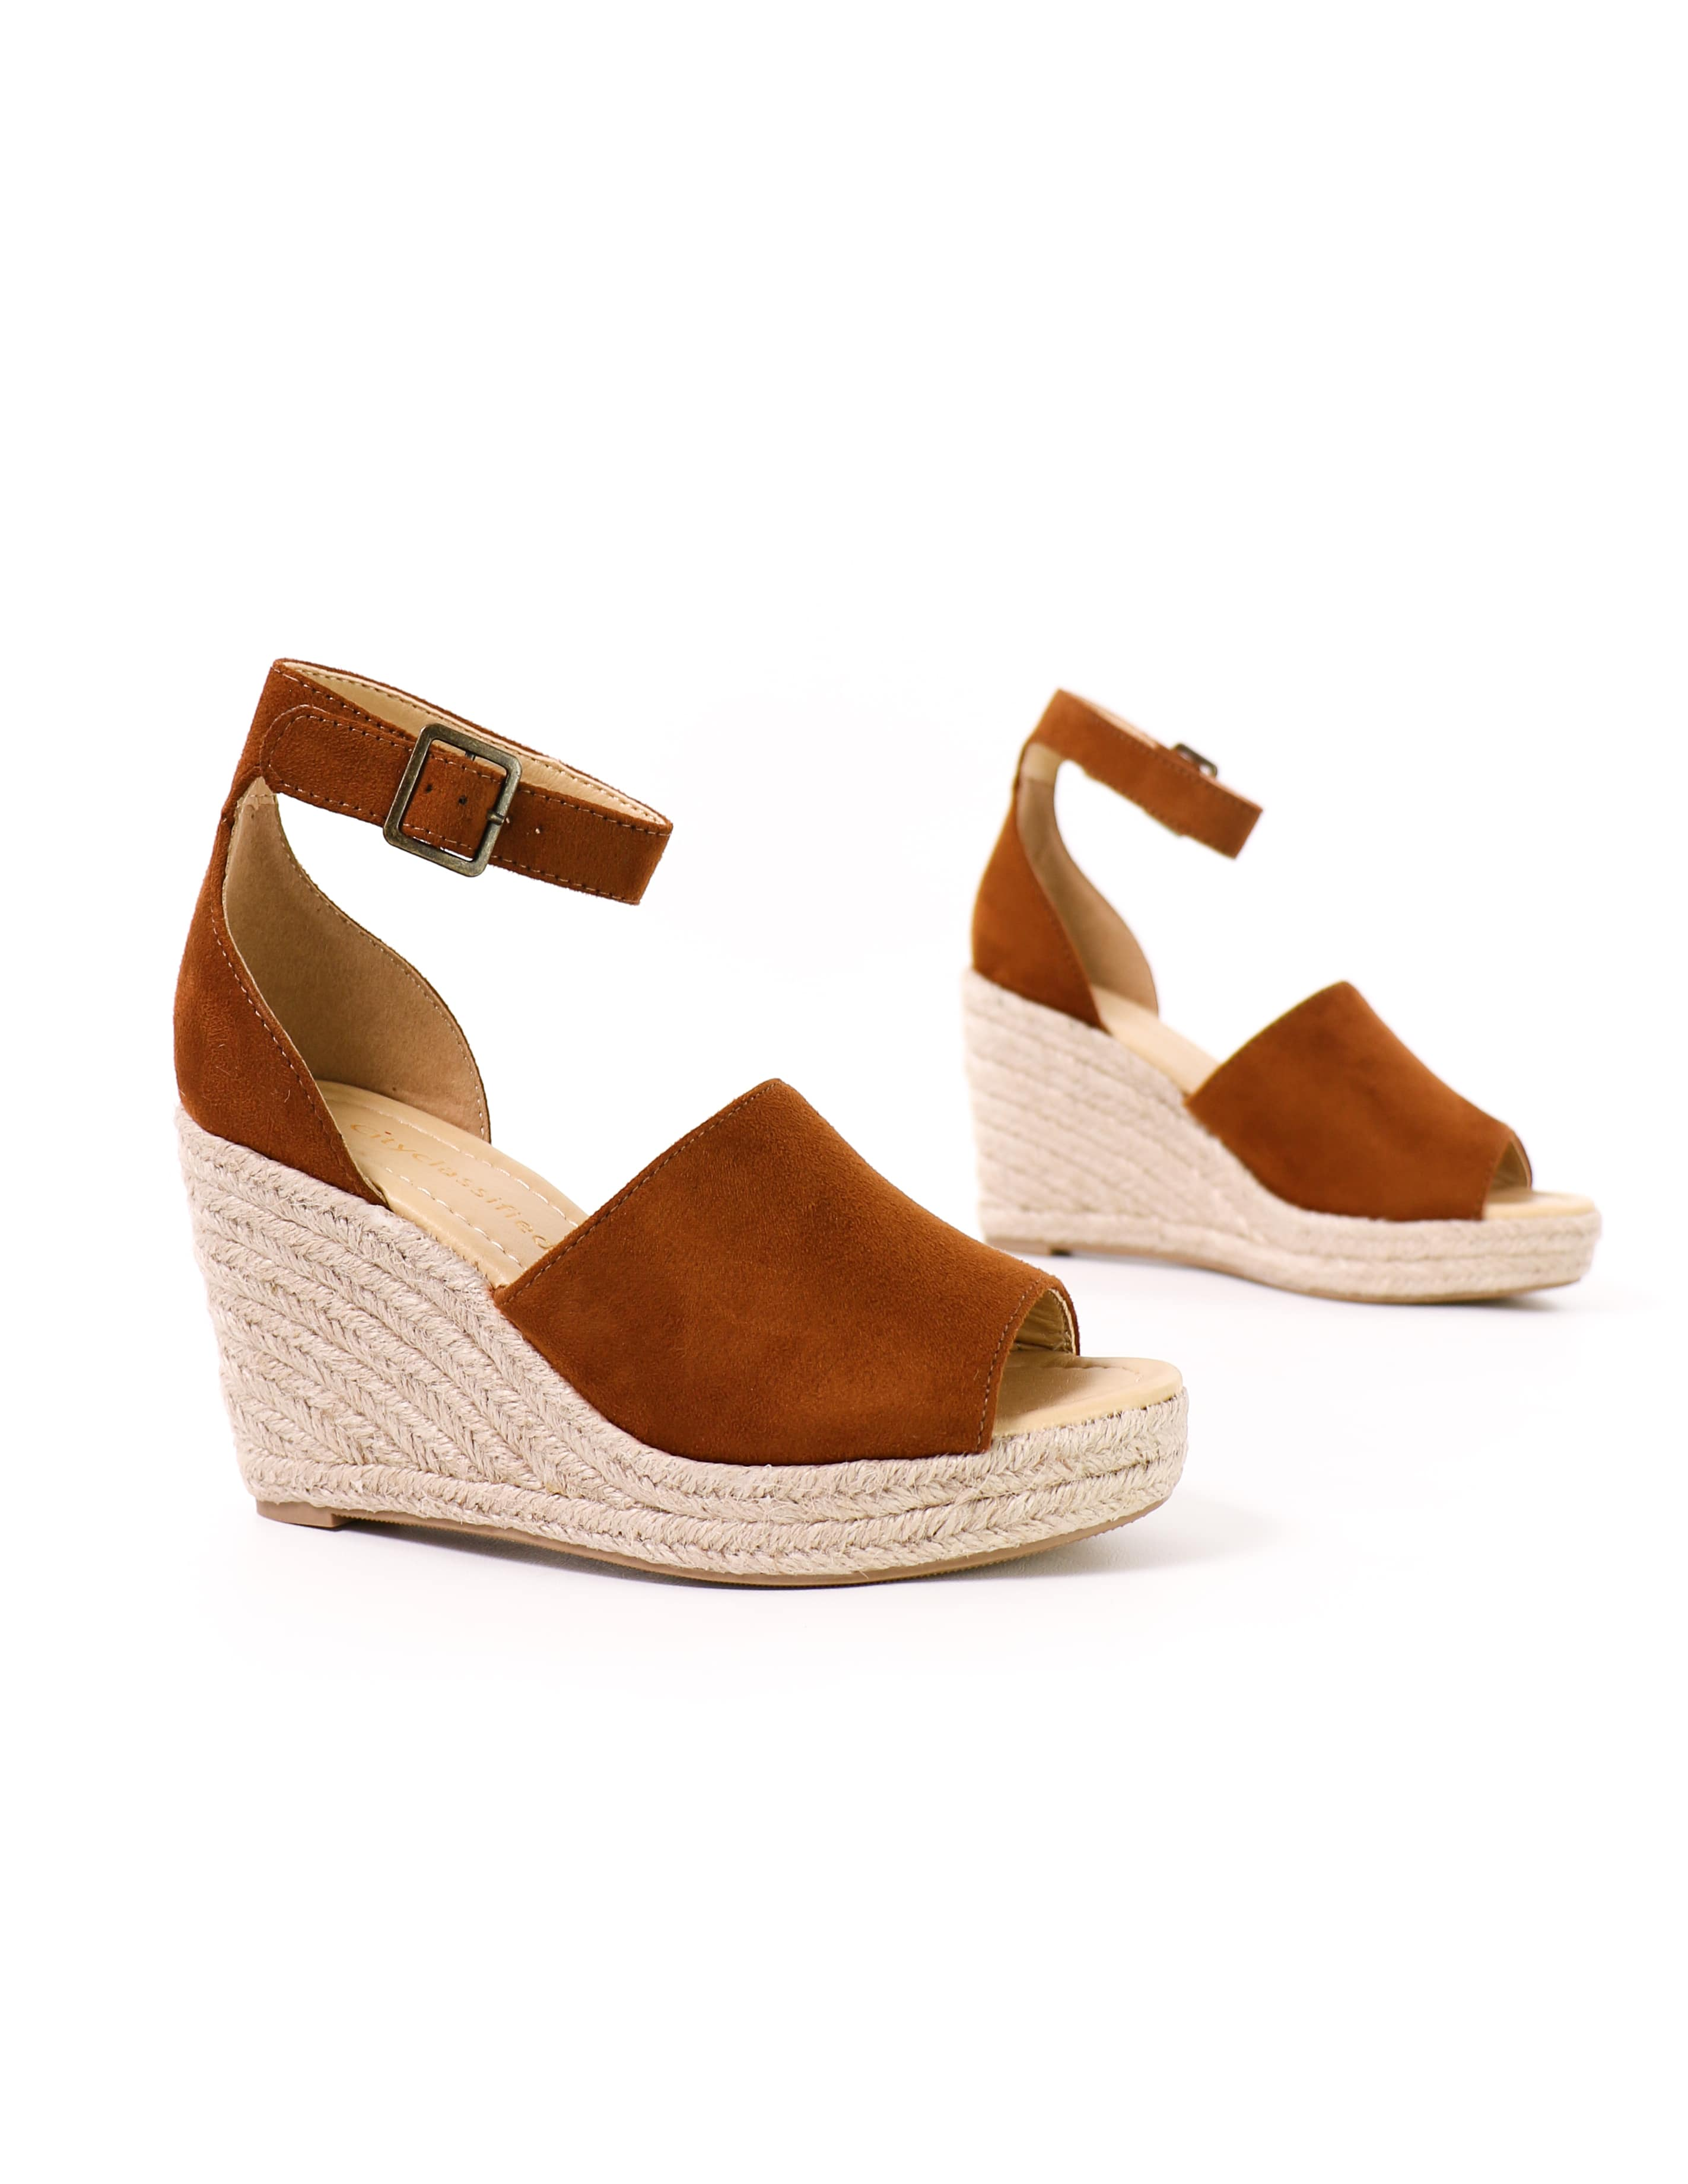 close up of the tan this is not a espadrille wedge platform sandal in tan - elle bleu shoes